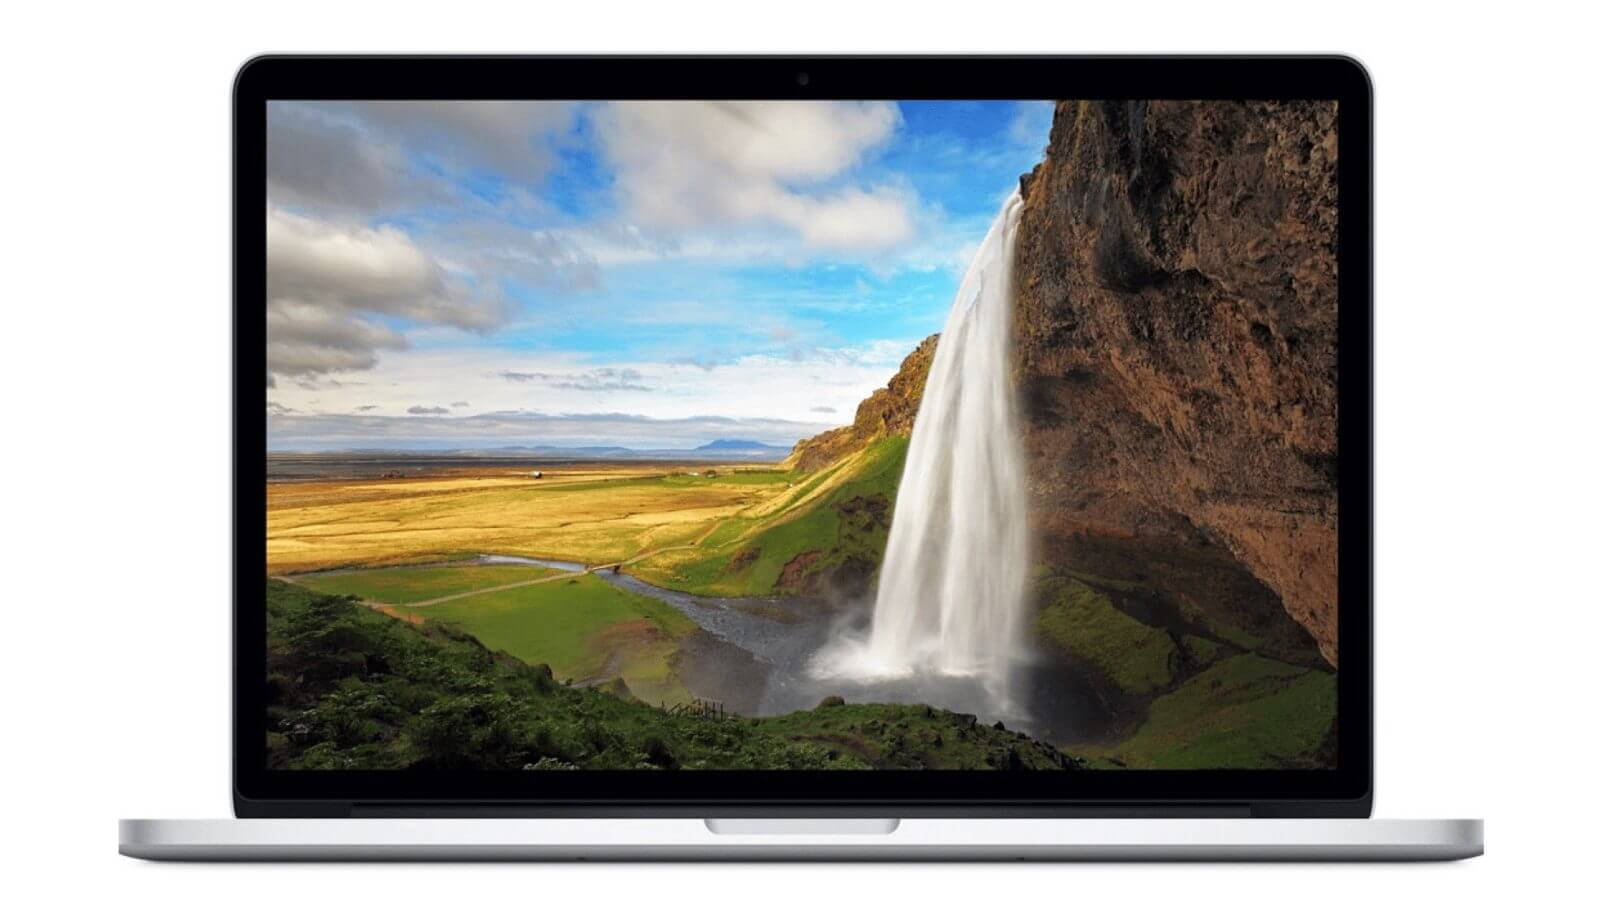 Recalled 15-inch MacBook Pros get banned from flights due to battery fire risk